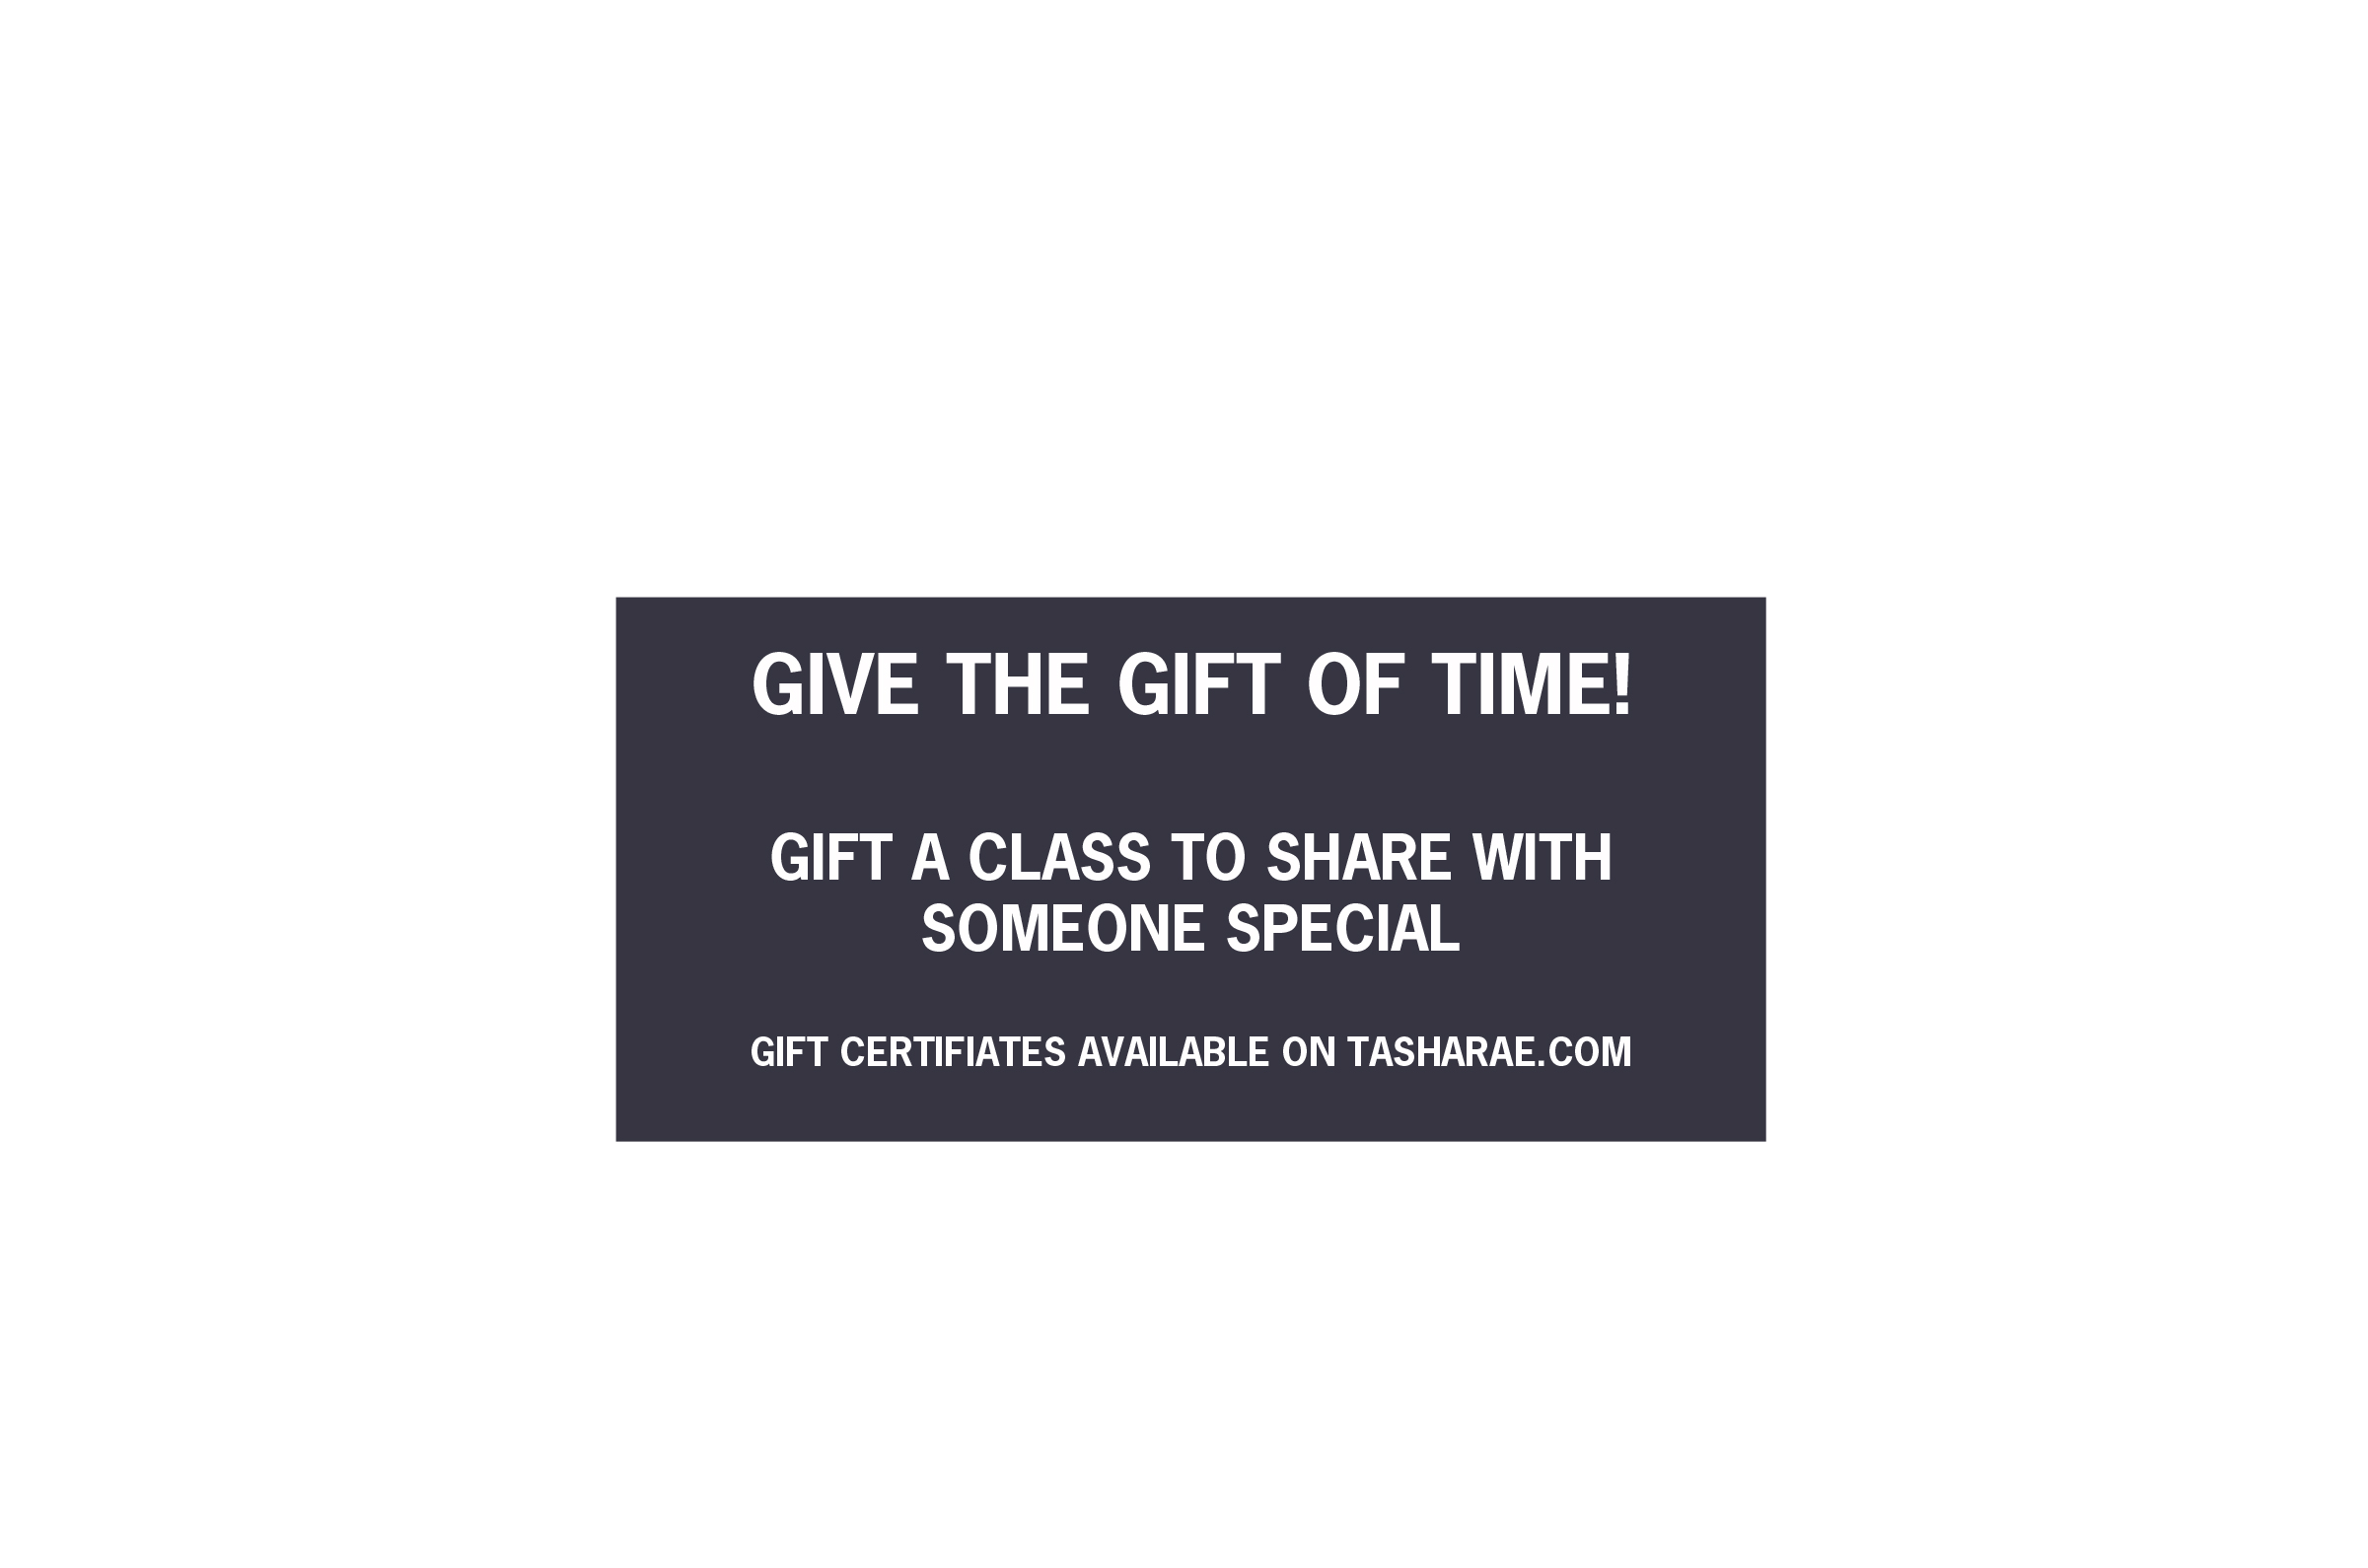 Gift Certificate - Give the gift of time! Gift yourself and/or a loved one a jewelry class & enjoy a fun filled night together! Plus.. take home a one-of-a-kind piece of jewelry hand-crafted by yourself.Classes are $45 a piece, so 1 gift card per class/person. We will send you a code to use to register for the class of your choice at any time in the future. Gift certificates have no expiration date.